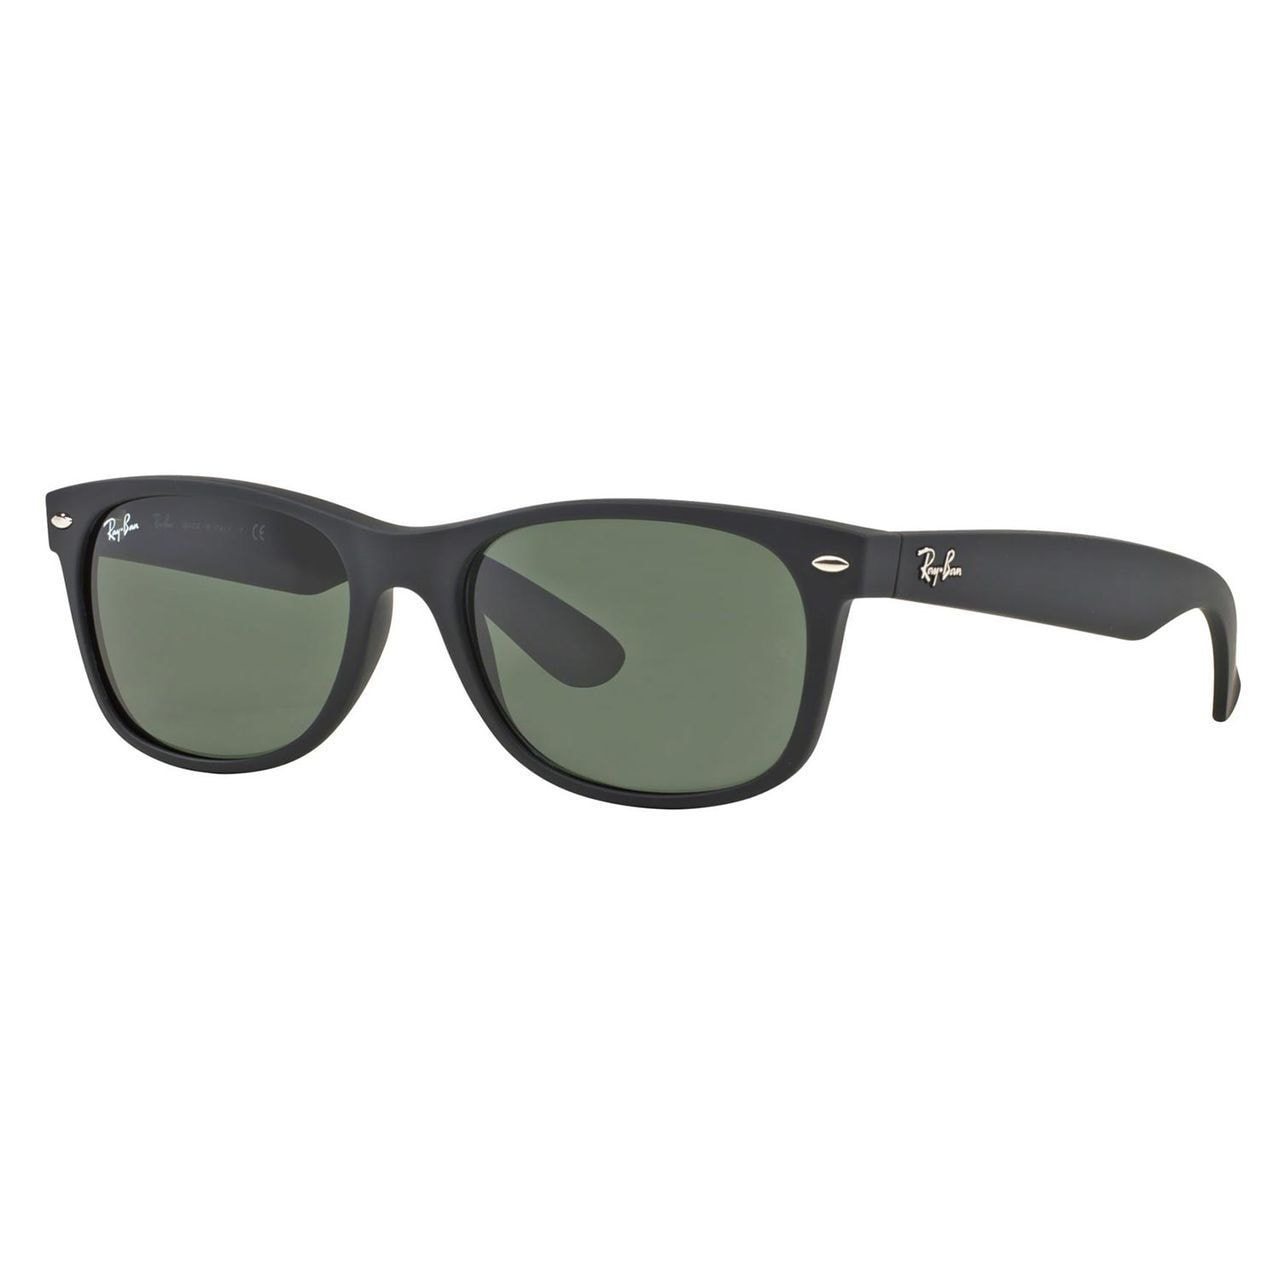 Shop Rayban Sunglasses 2132 622 52 - Black - Free Shipping Today -  Overstock.com - 7031048